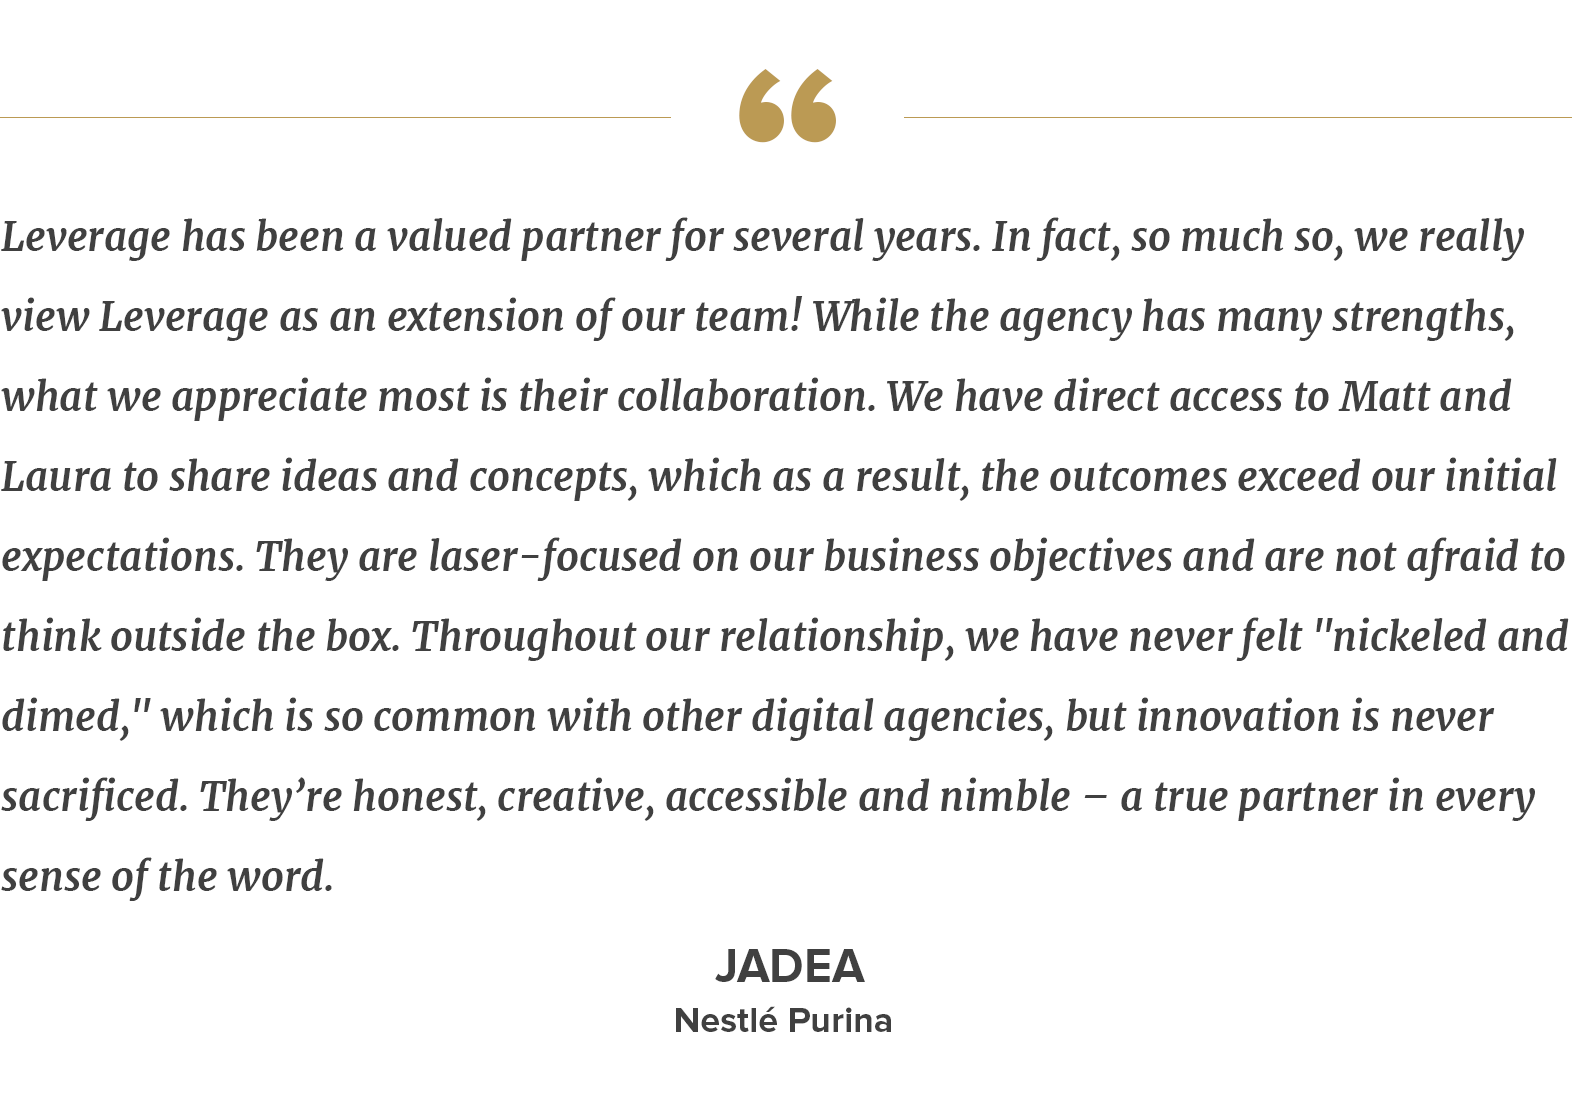 """client quote –Leverage has been a valued partner for several years. In fact, so much so, we really view Leverage as an extension of our team! While the agency has many strengths, what we appreciate most is their collaboration. We have direct access to Matt and Laura to share ideas and concepts, which as a result, the outcomes exceed our initial expectations. They are laser-focused on our business objectives and are not afraid to think outside the box. Throughout our relationship, we have never felt """"nickeled and dimed,"""" which is so common with other digital agencies, but innovation is never sacrificed. They're honest, creative, accessible and nimble – a true partner in every sense of the word.  — Jadea, Nestlé Purina"""